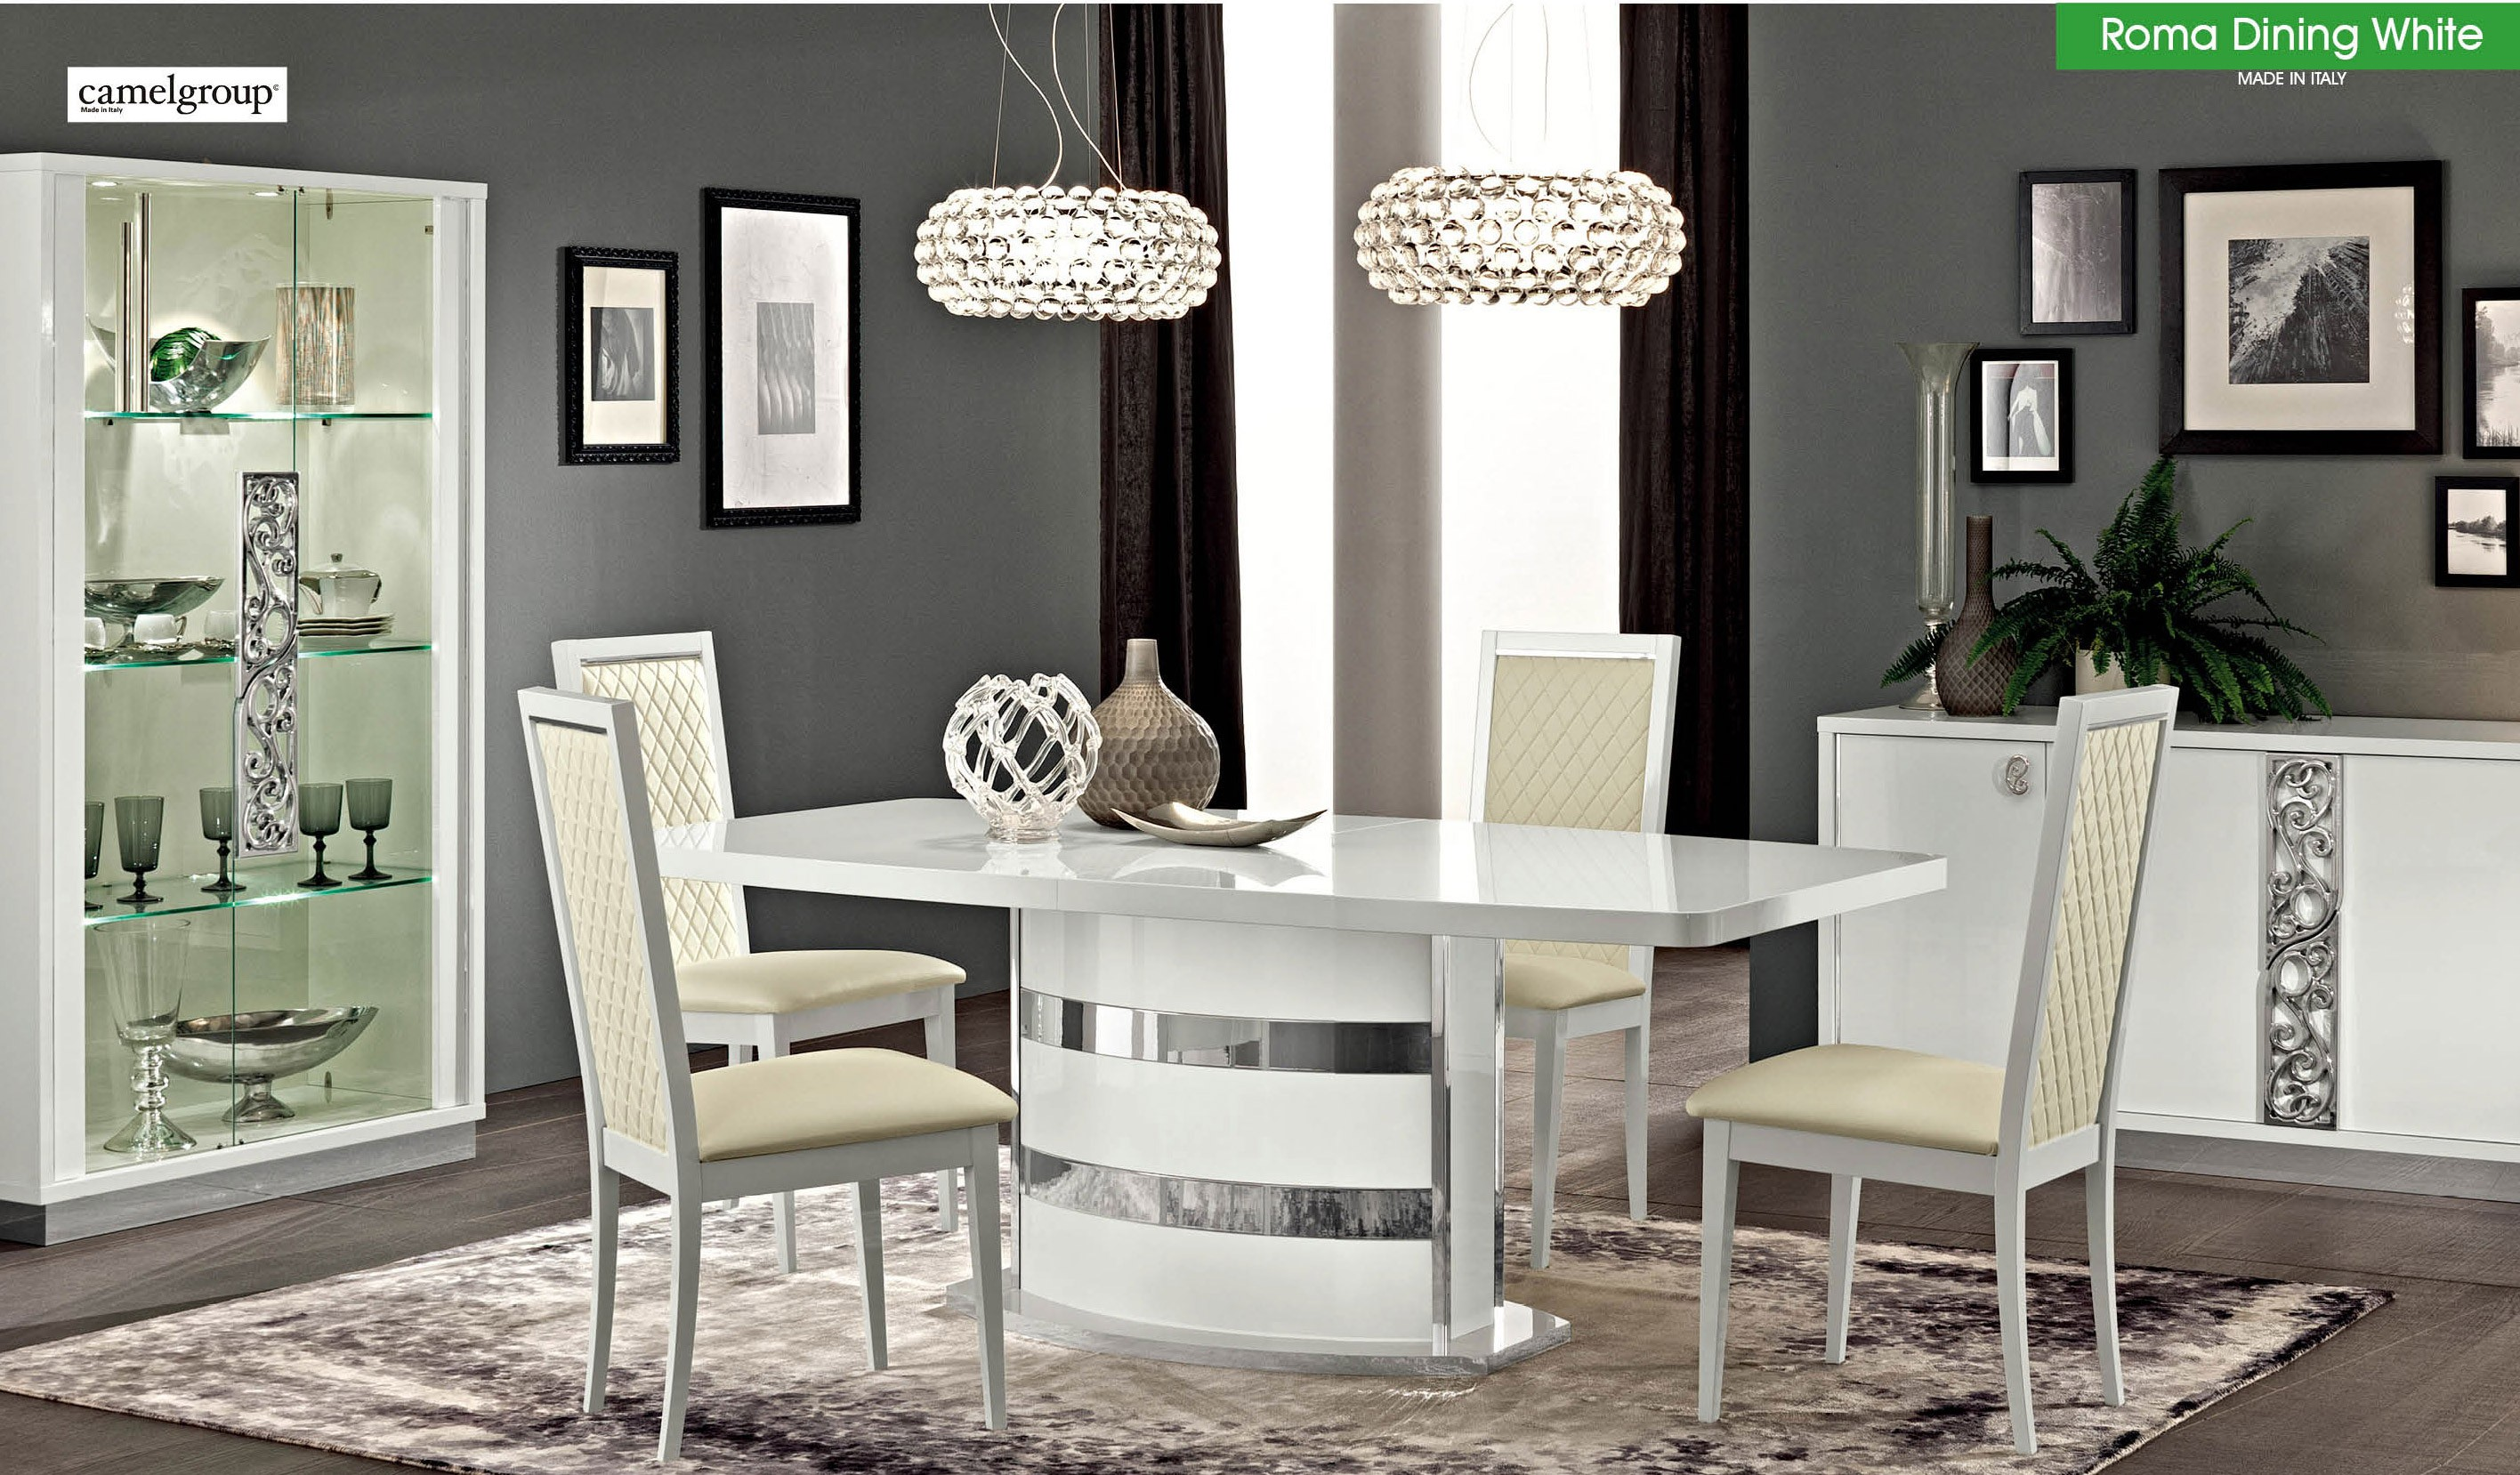 italian lacquer dining room furniture | Roma Italian Dining Room Set in White Lacquer Finish